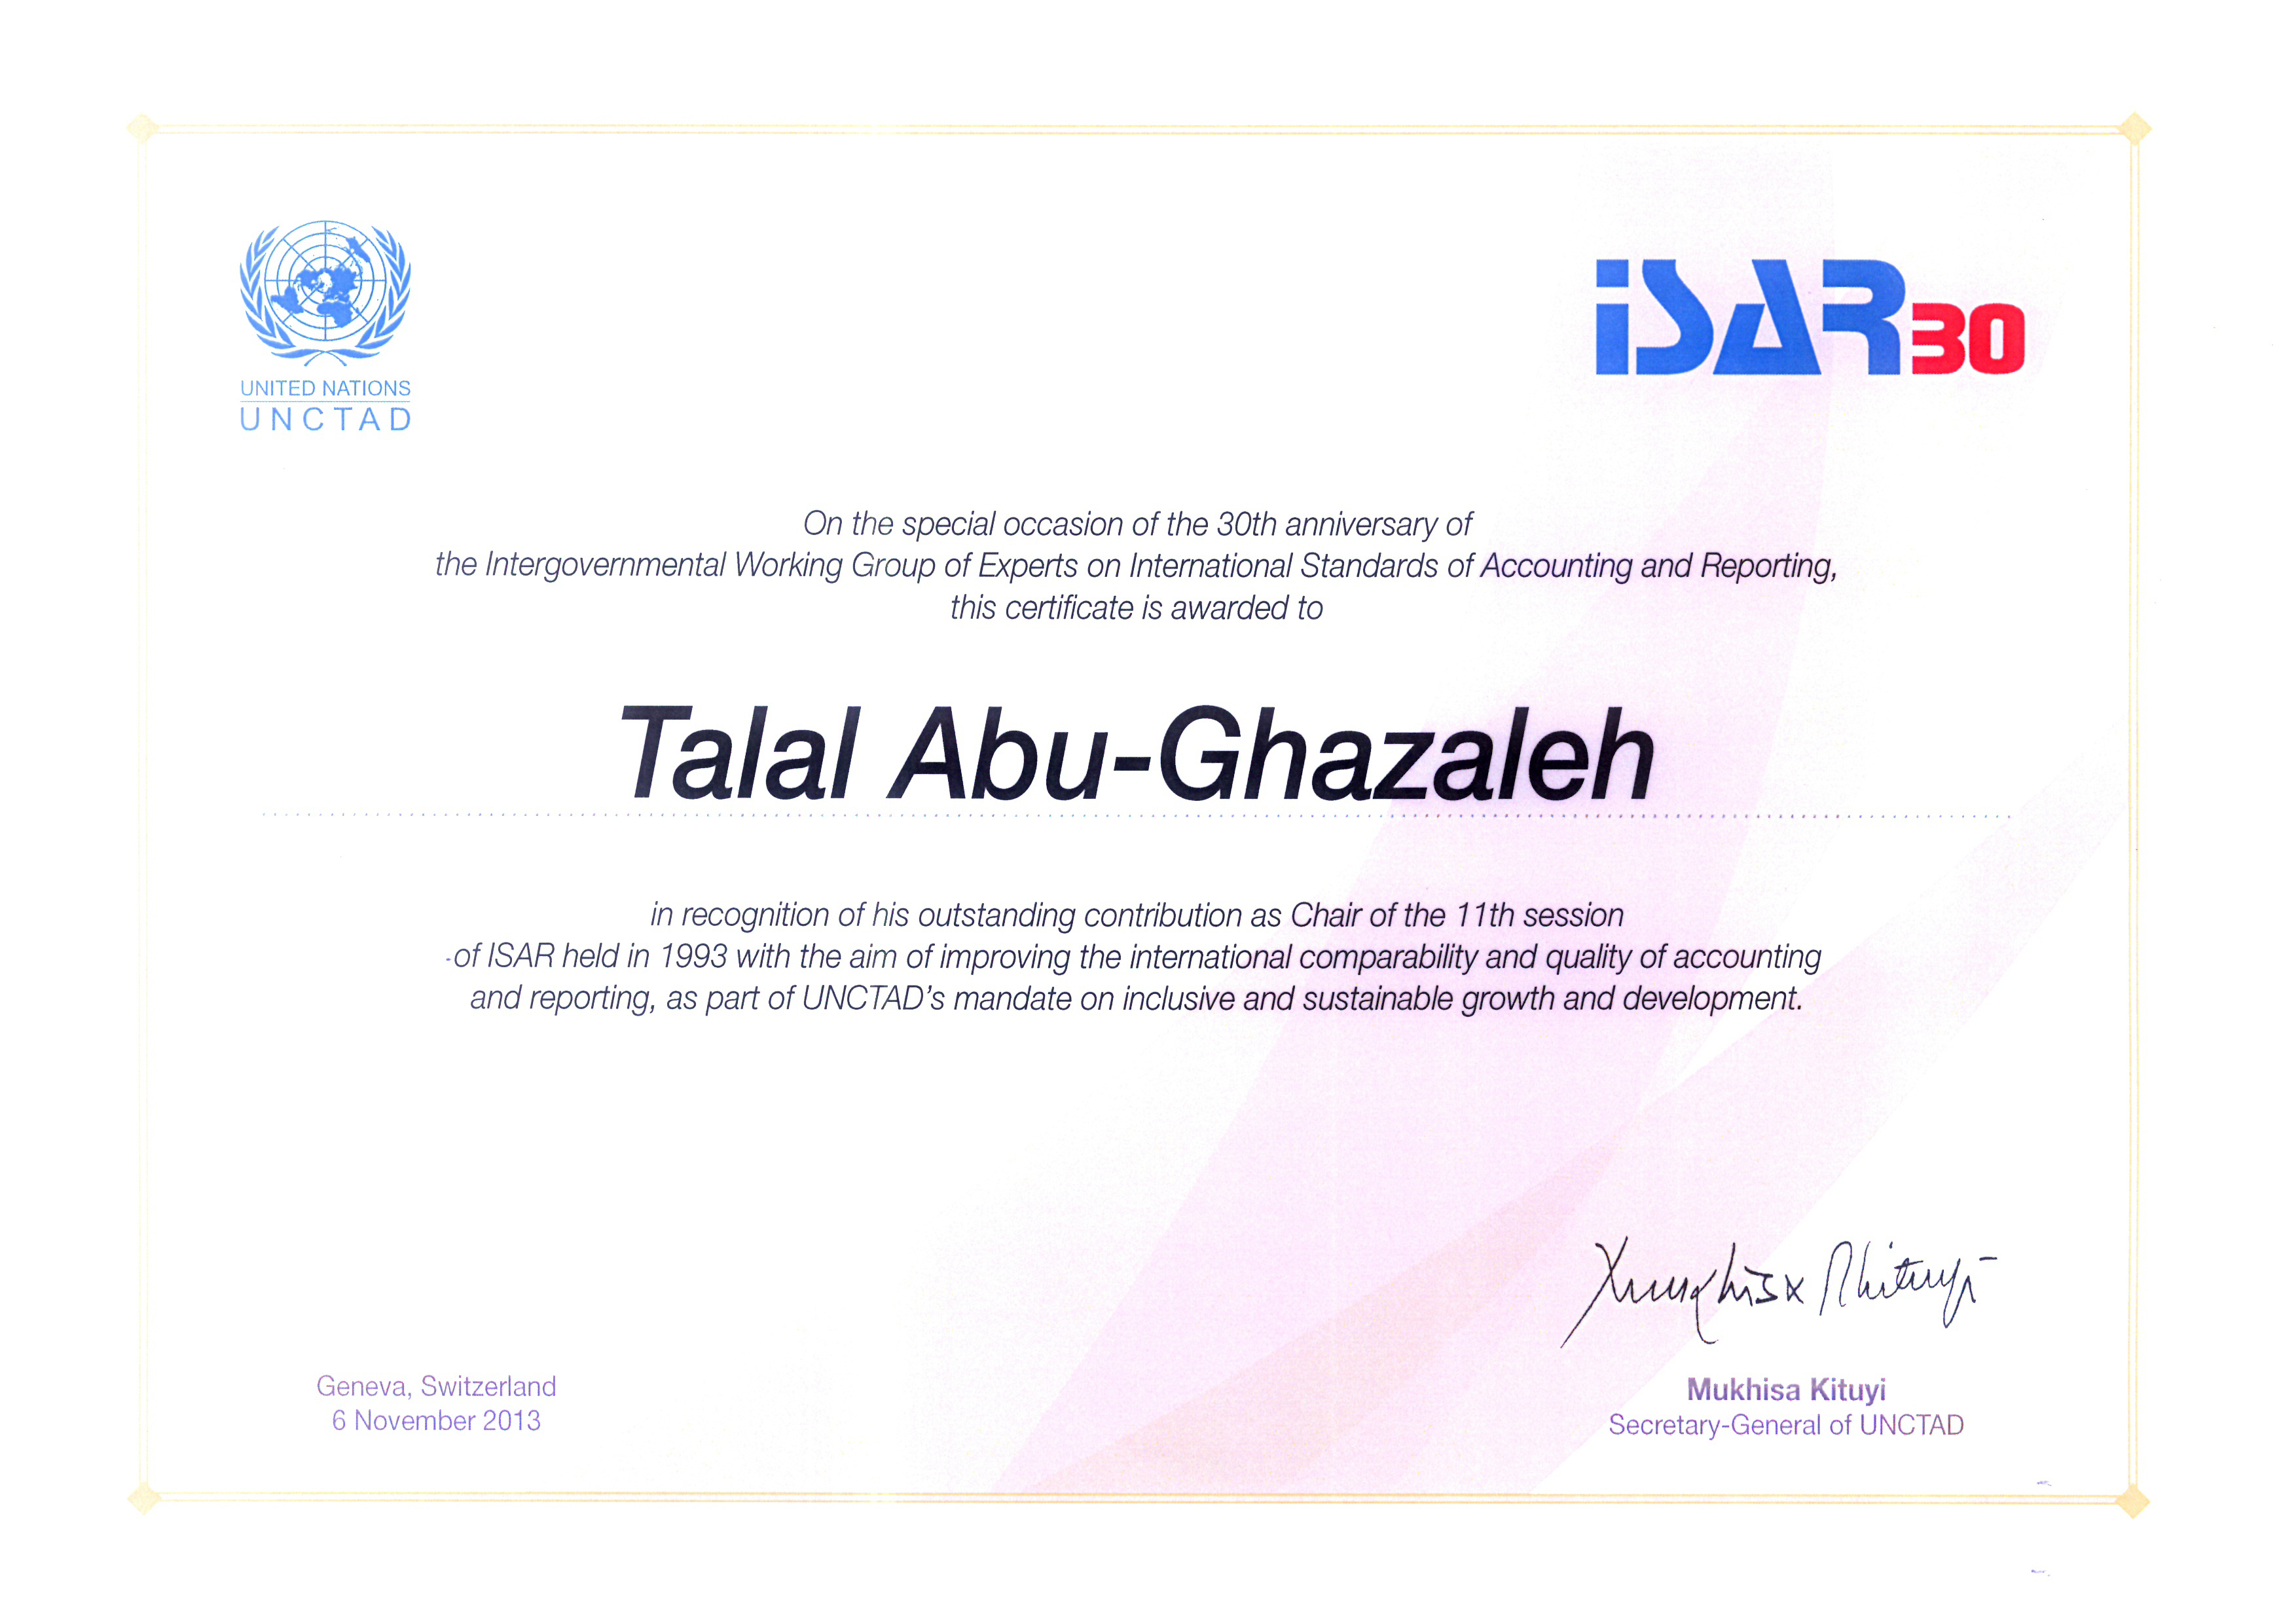 arab organization for quality assurance in education aroqa a thank you letter from mr mukhisa kituyi secretary general of unctad to he dr talal abu ghazaleh